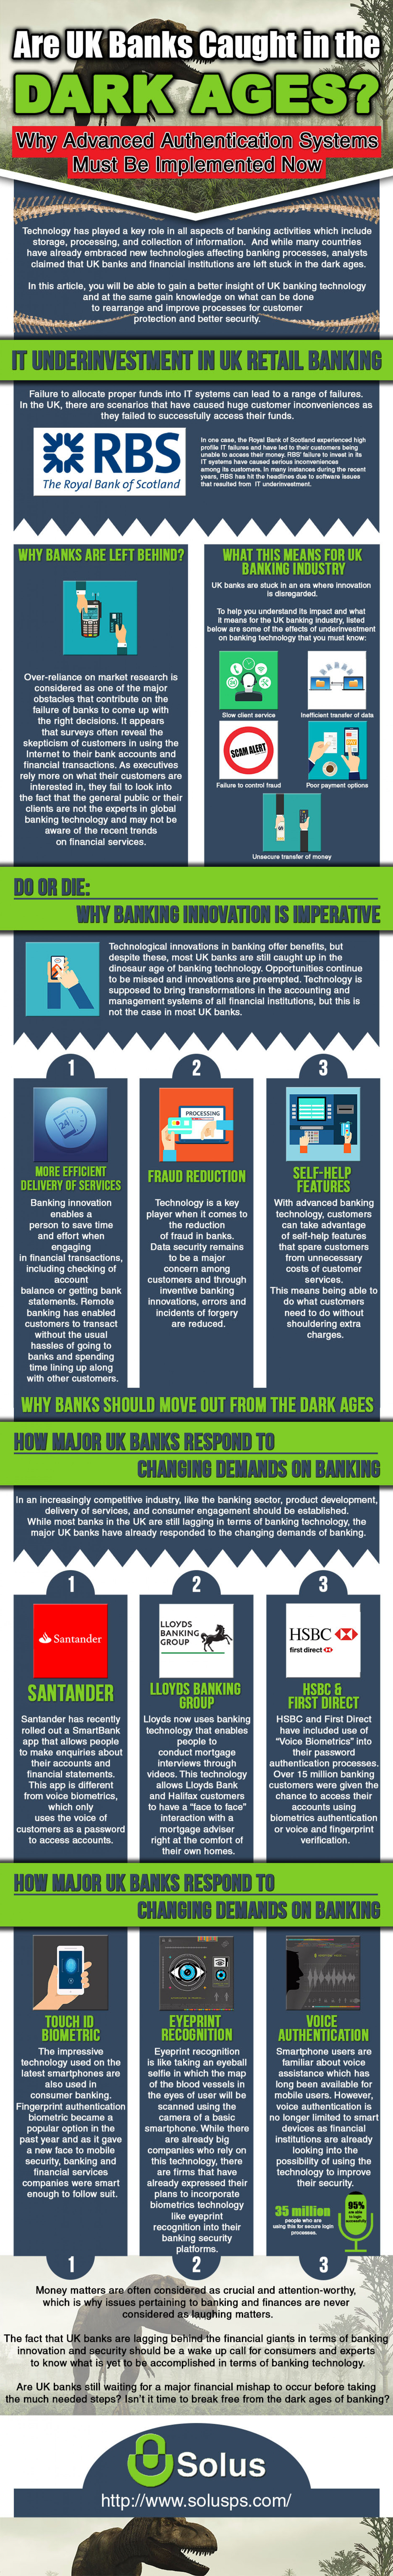 Are UK Banks Caught in the Dark Ages? Infographic